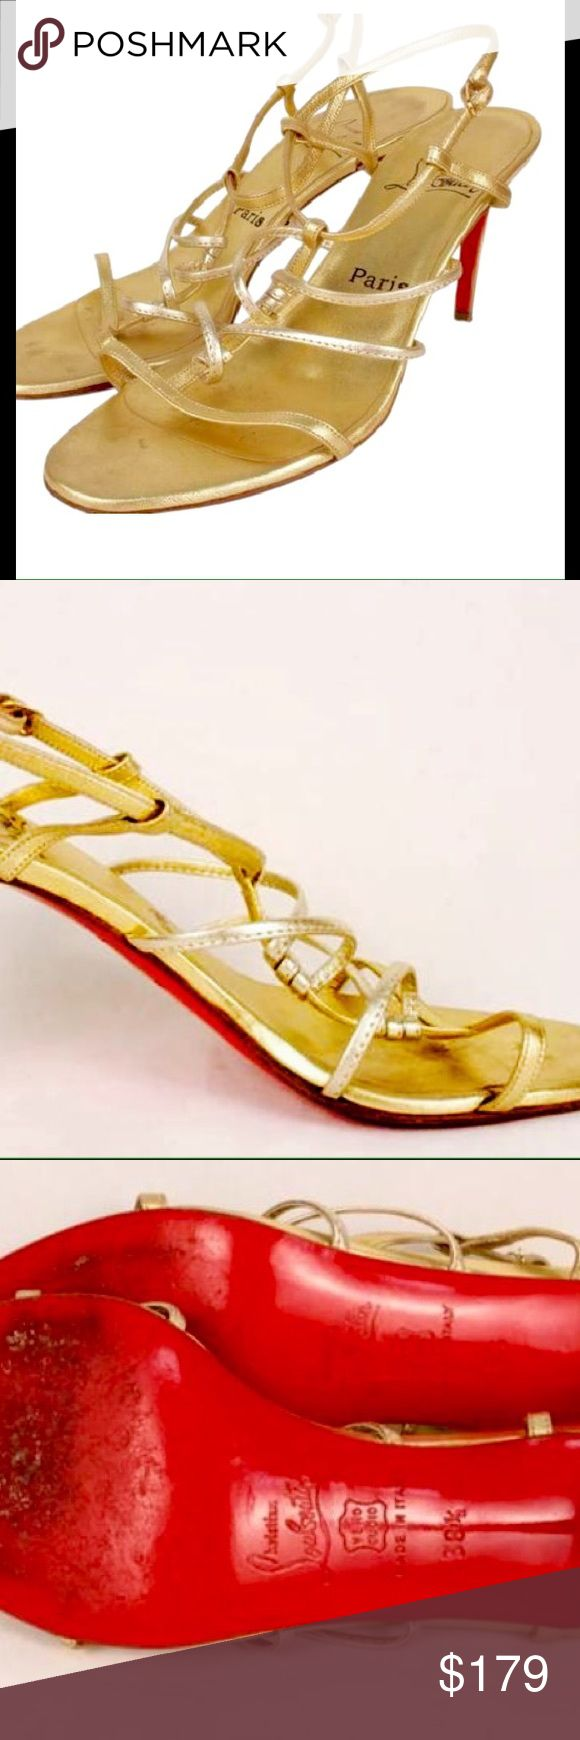 Christian louboutin gold Strappy sandals Christian louboutin Gold Strappy sandals in good condition size 8.retails for 695 Christian Louboutin Shoes Heels